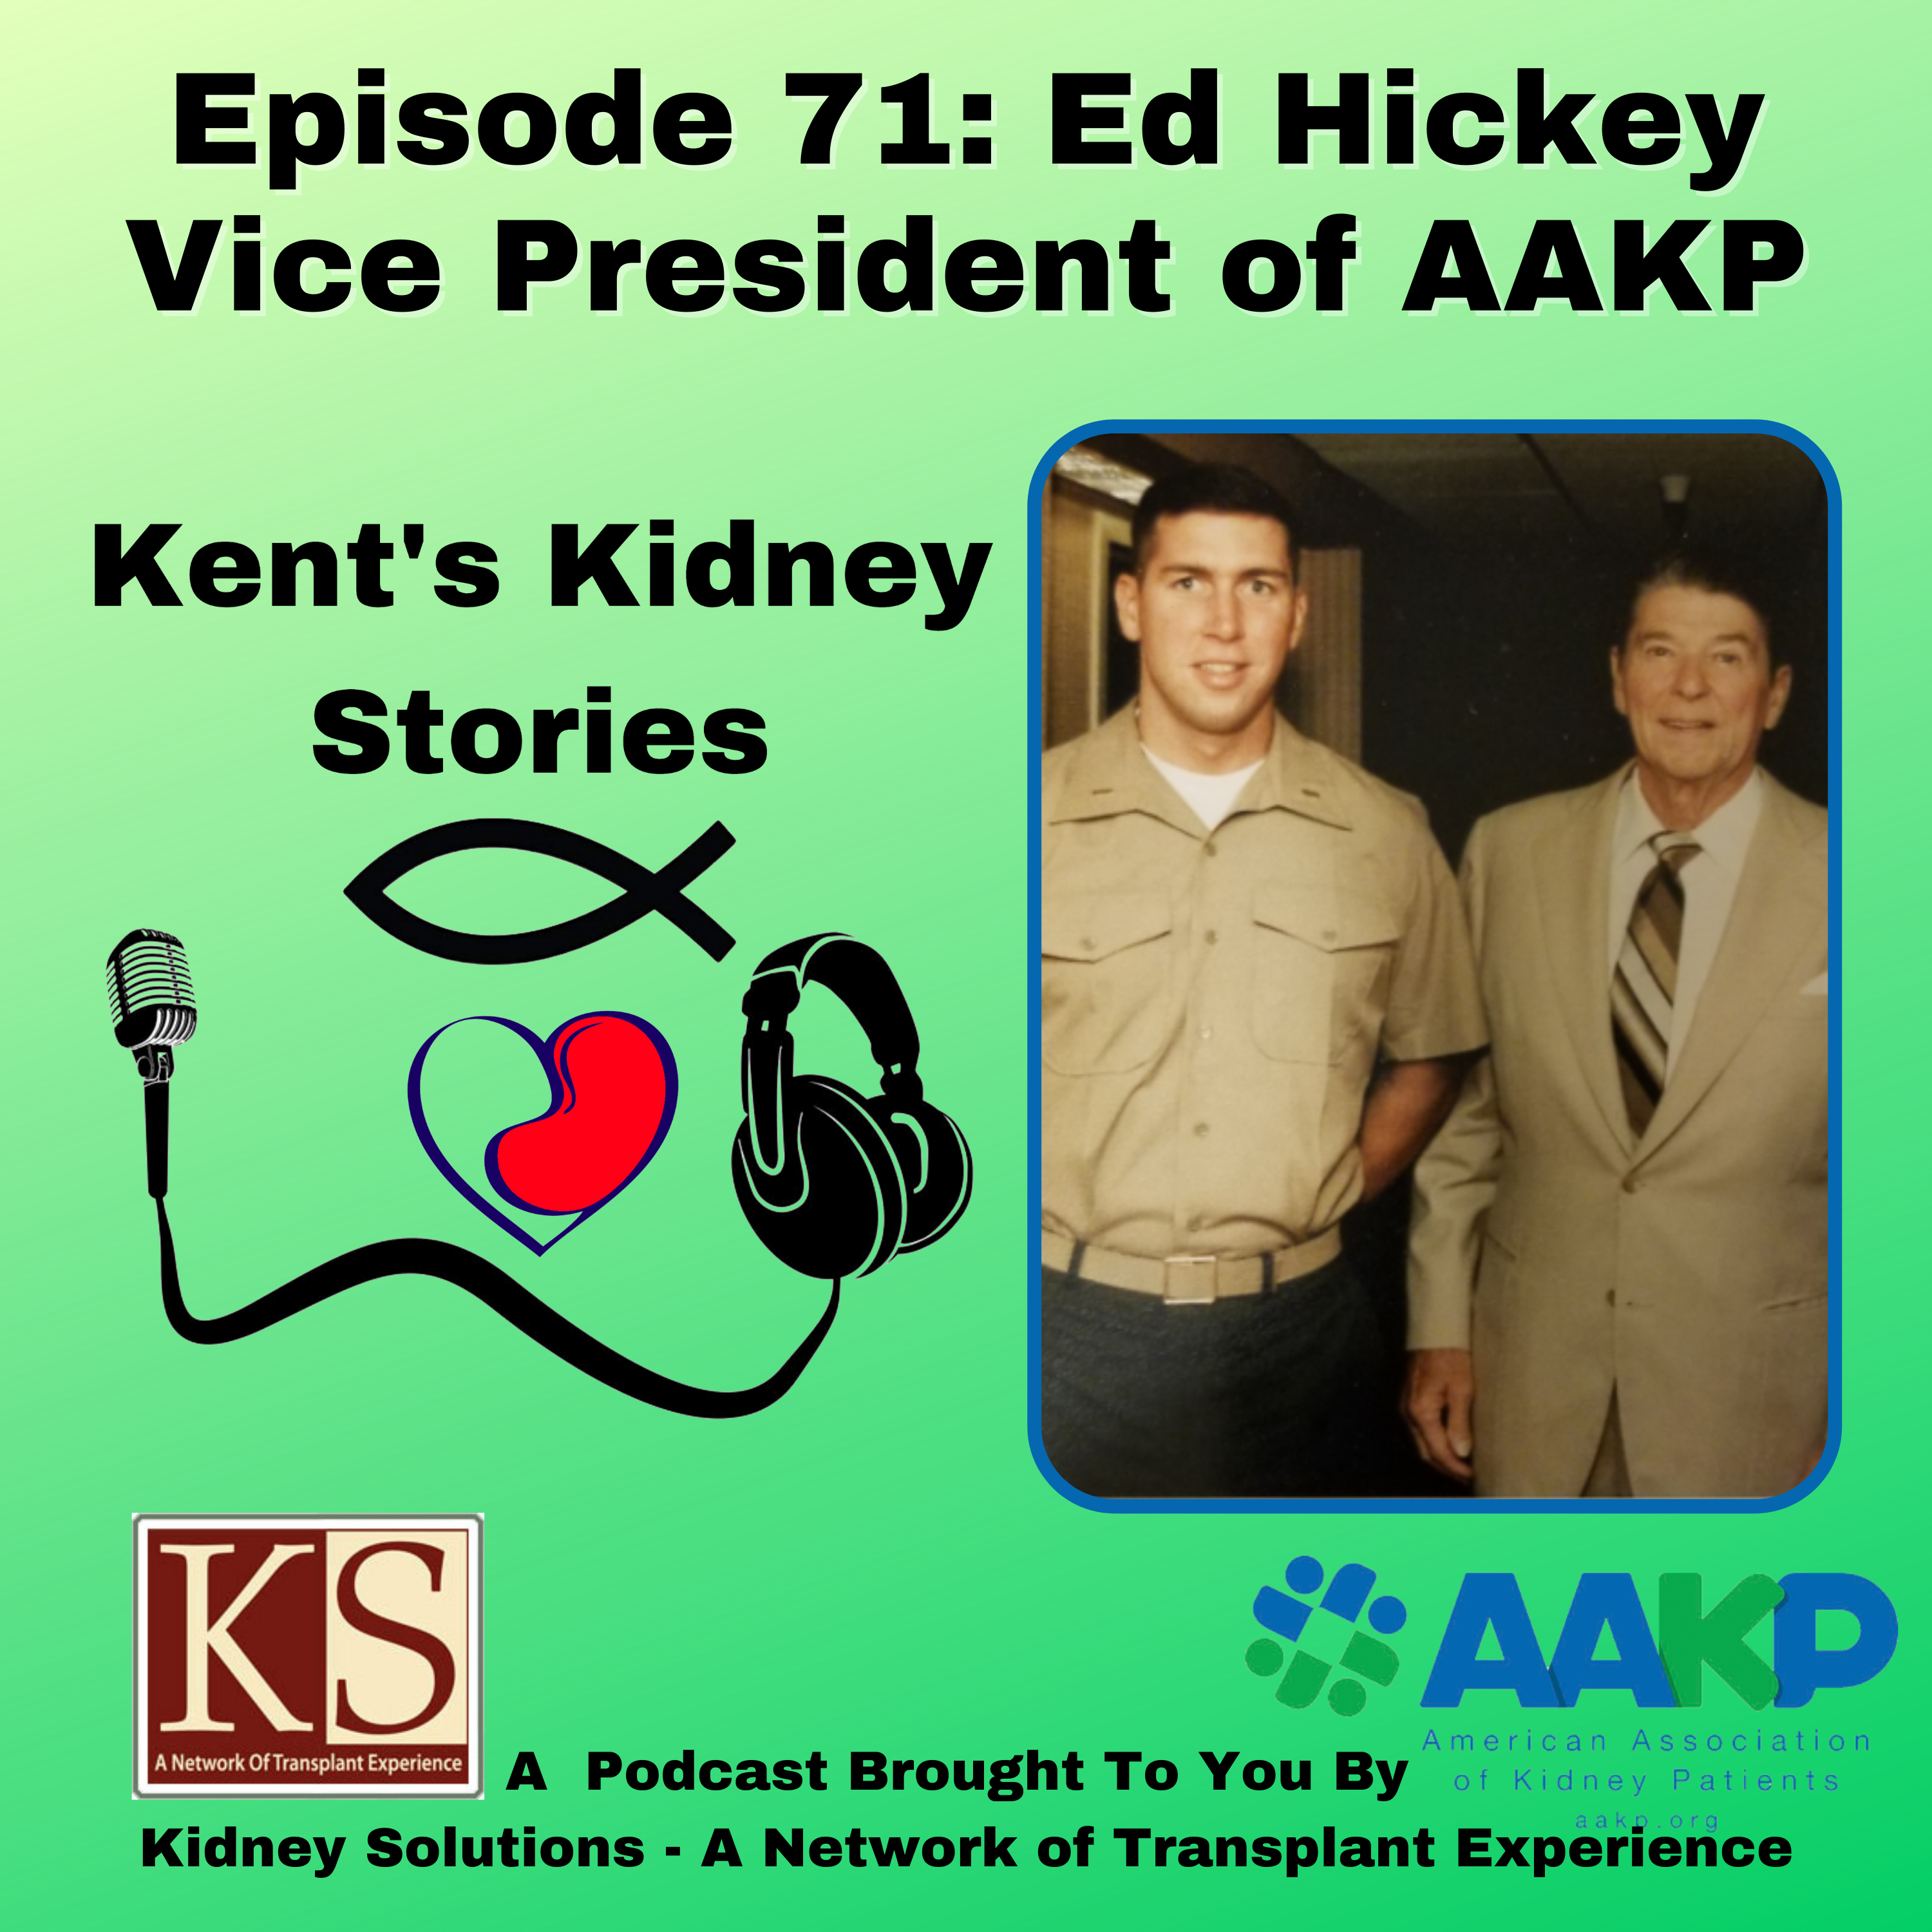 Episode 71: Ed Hickey Vice President of AAKP